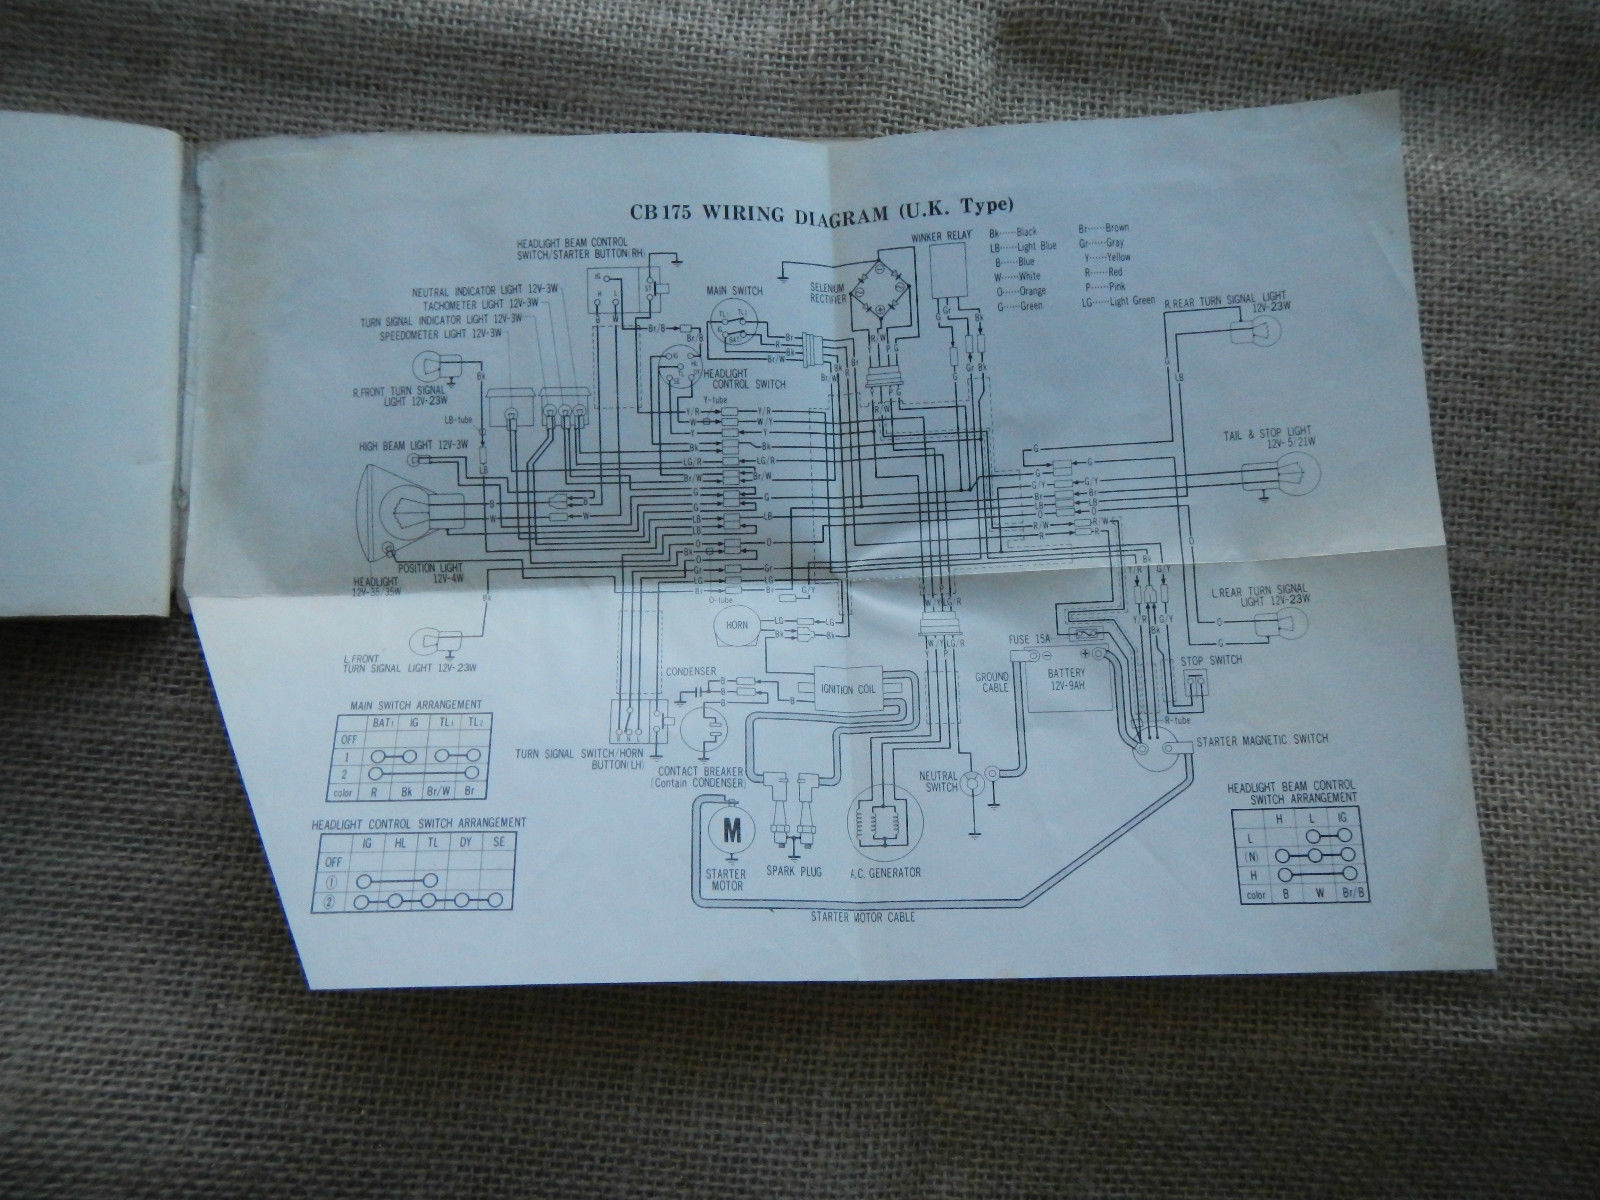 Magnificent 1969 Cb175 Wiring Diagram Wiring Diagram Wiring Cloud Eachirenstrafr09Org